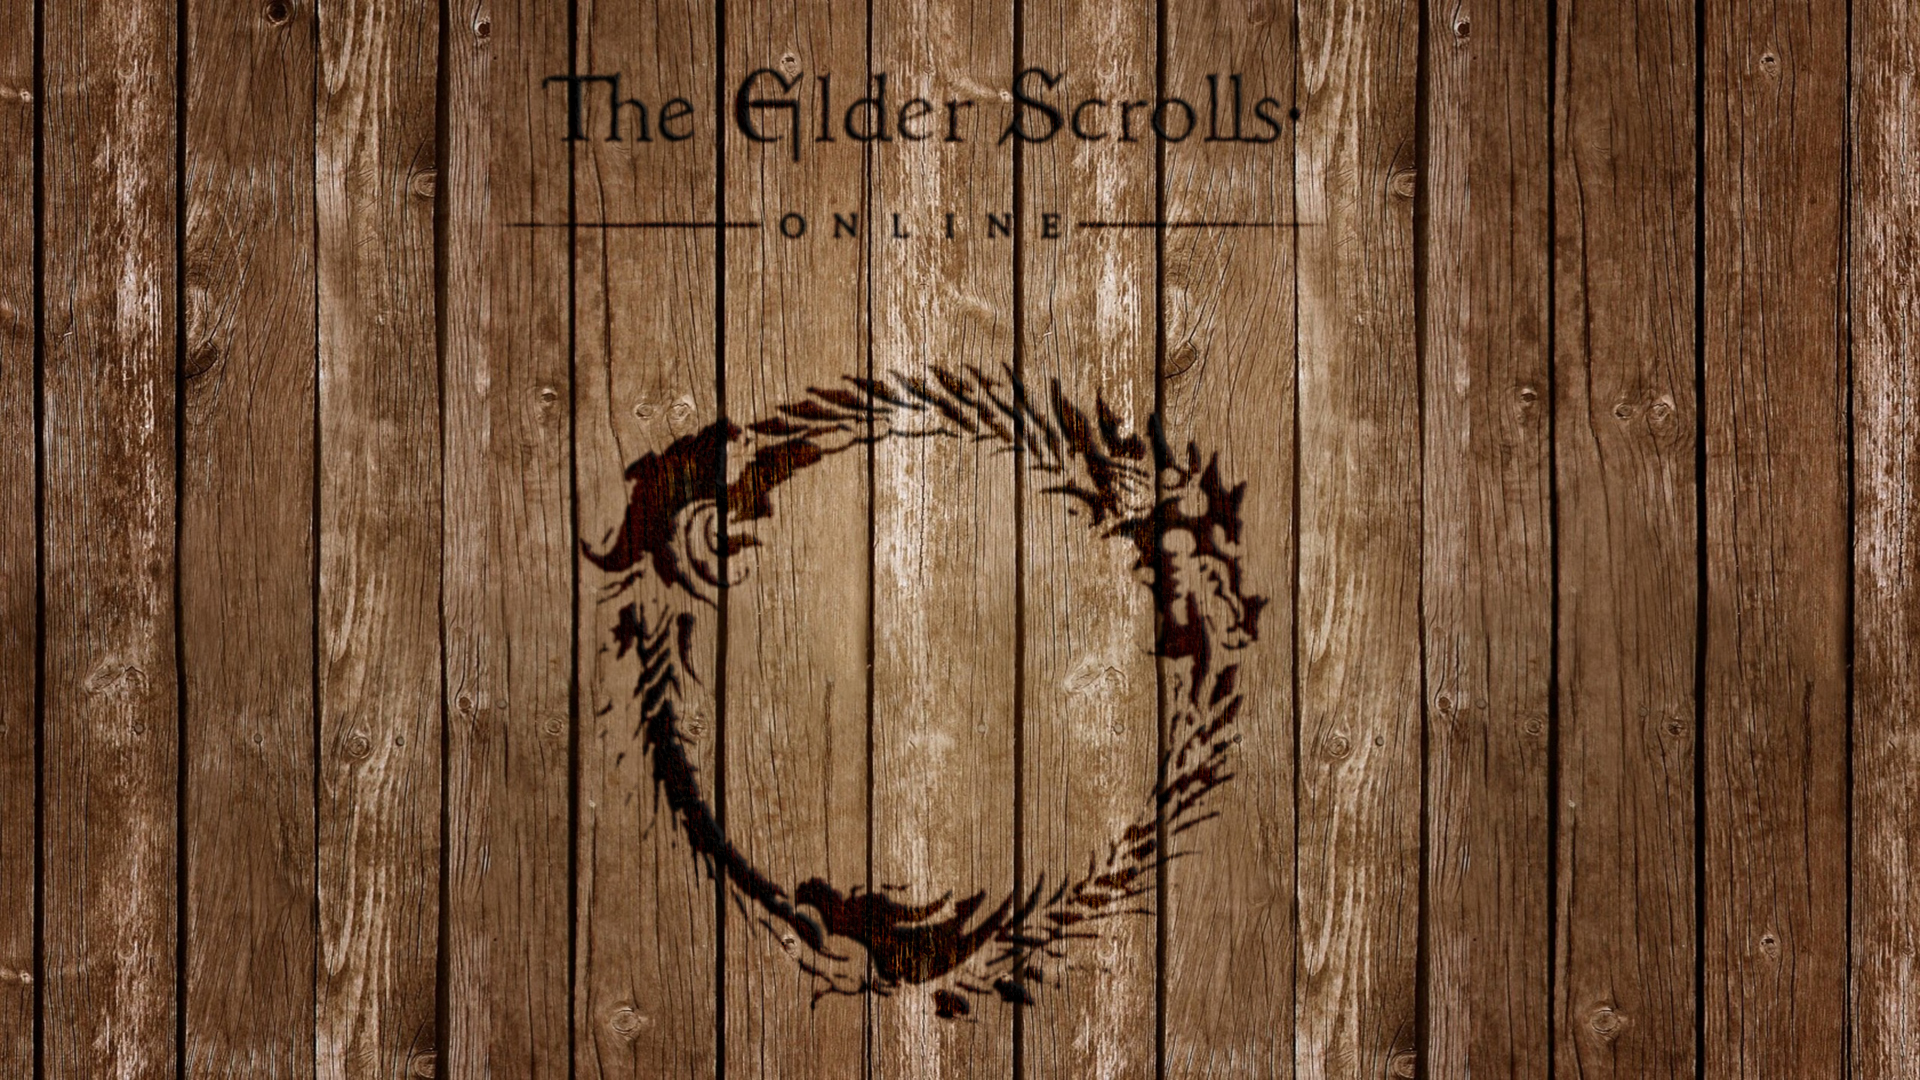 The Elder Scrolls Online Wallpapers, Pictures, Images